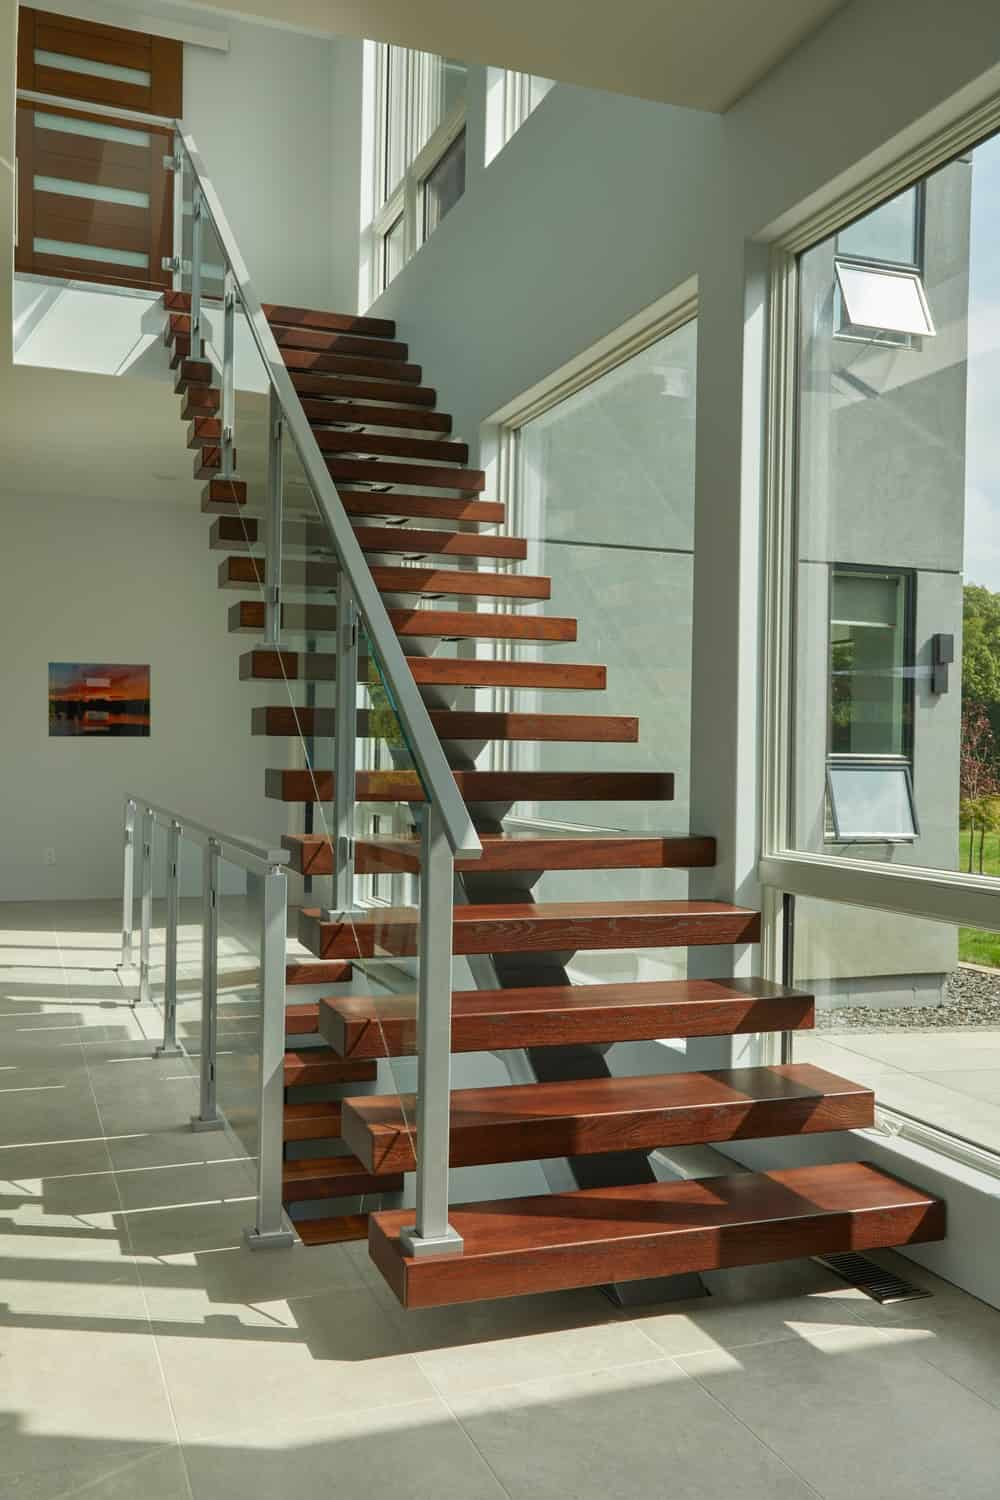 The staircase is illuminated by the natural lighting of the glass walls on its side.